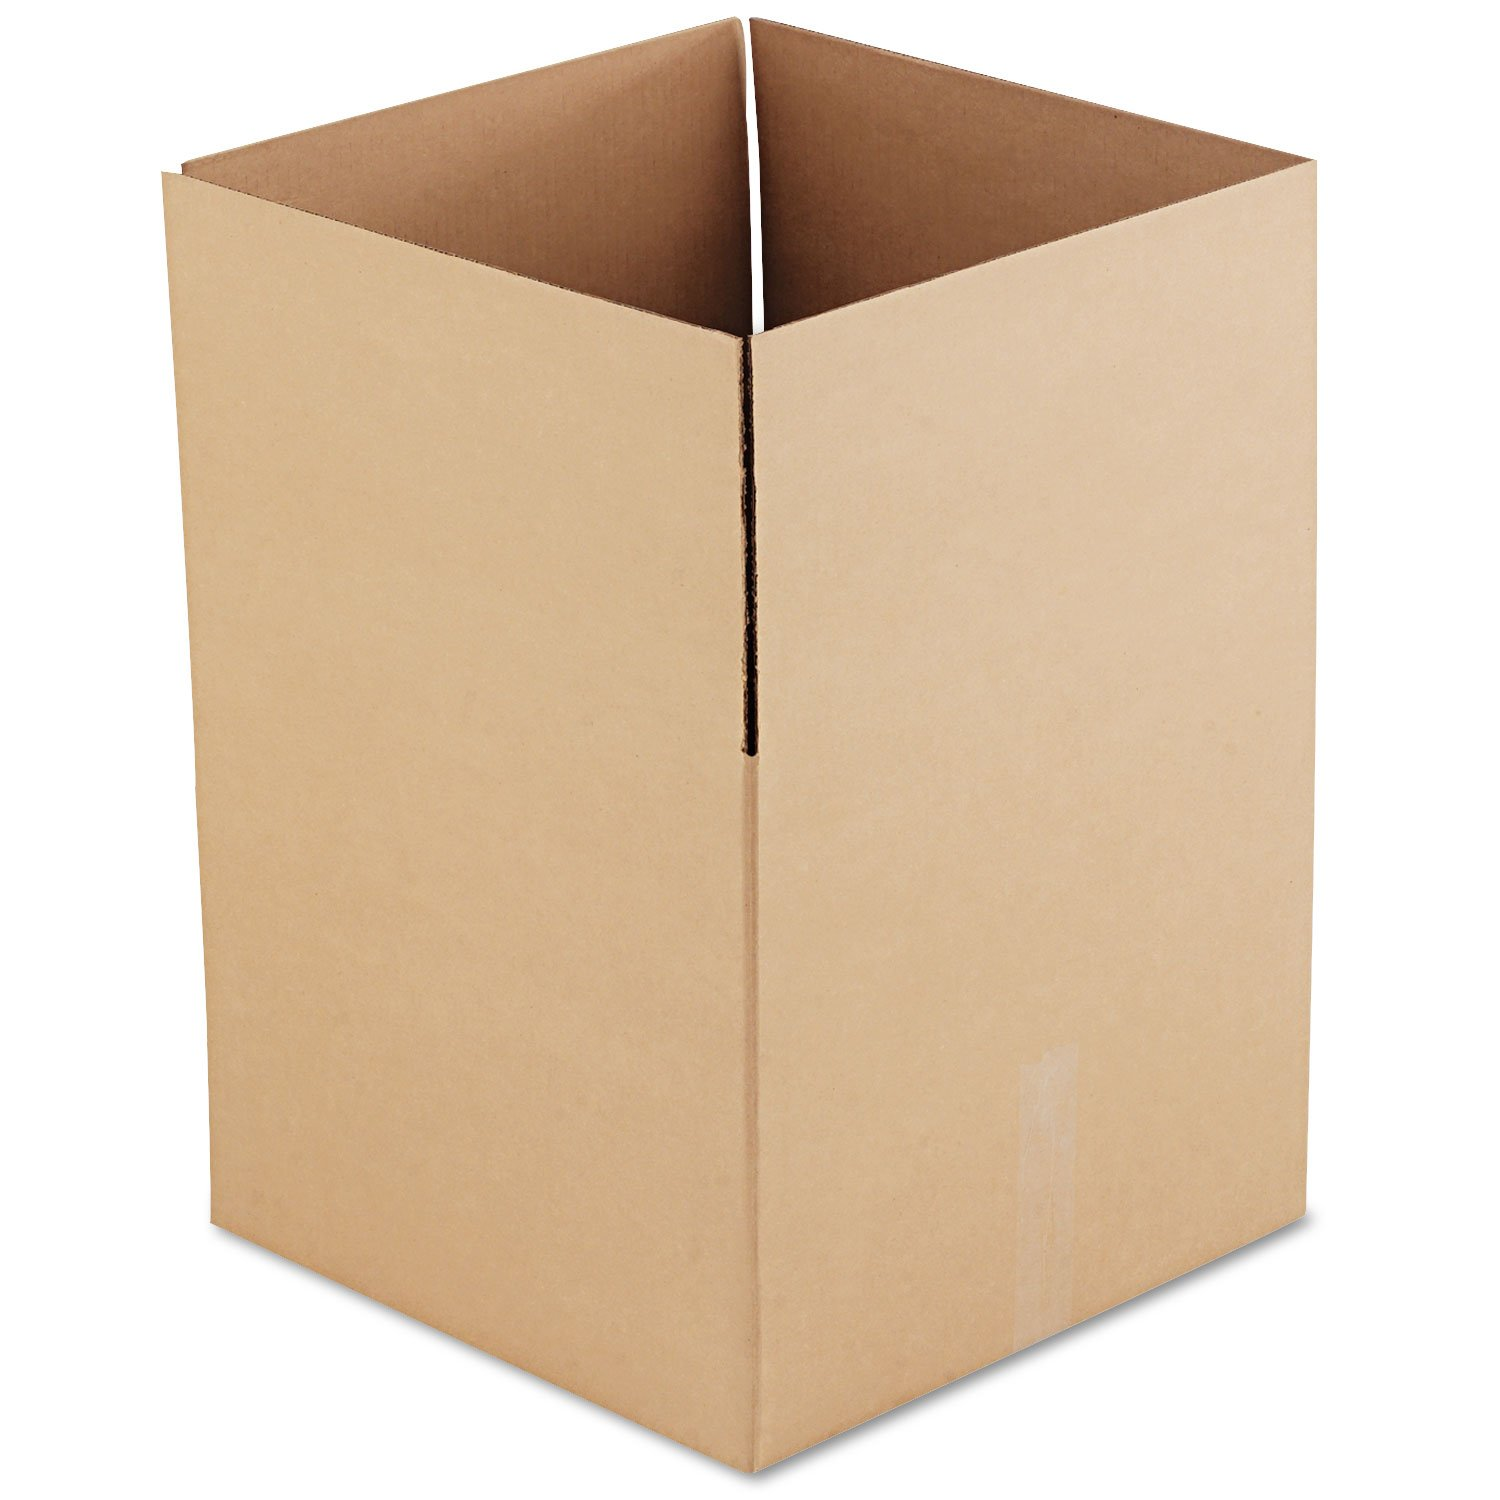 General Supply 181816 Brown Corrugated - Fixed-Depth Shipping Boxes, 18l x 18w x 16h, 15/Bundle